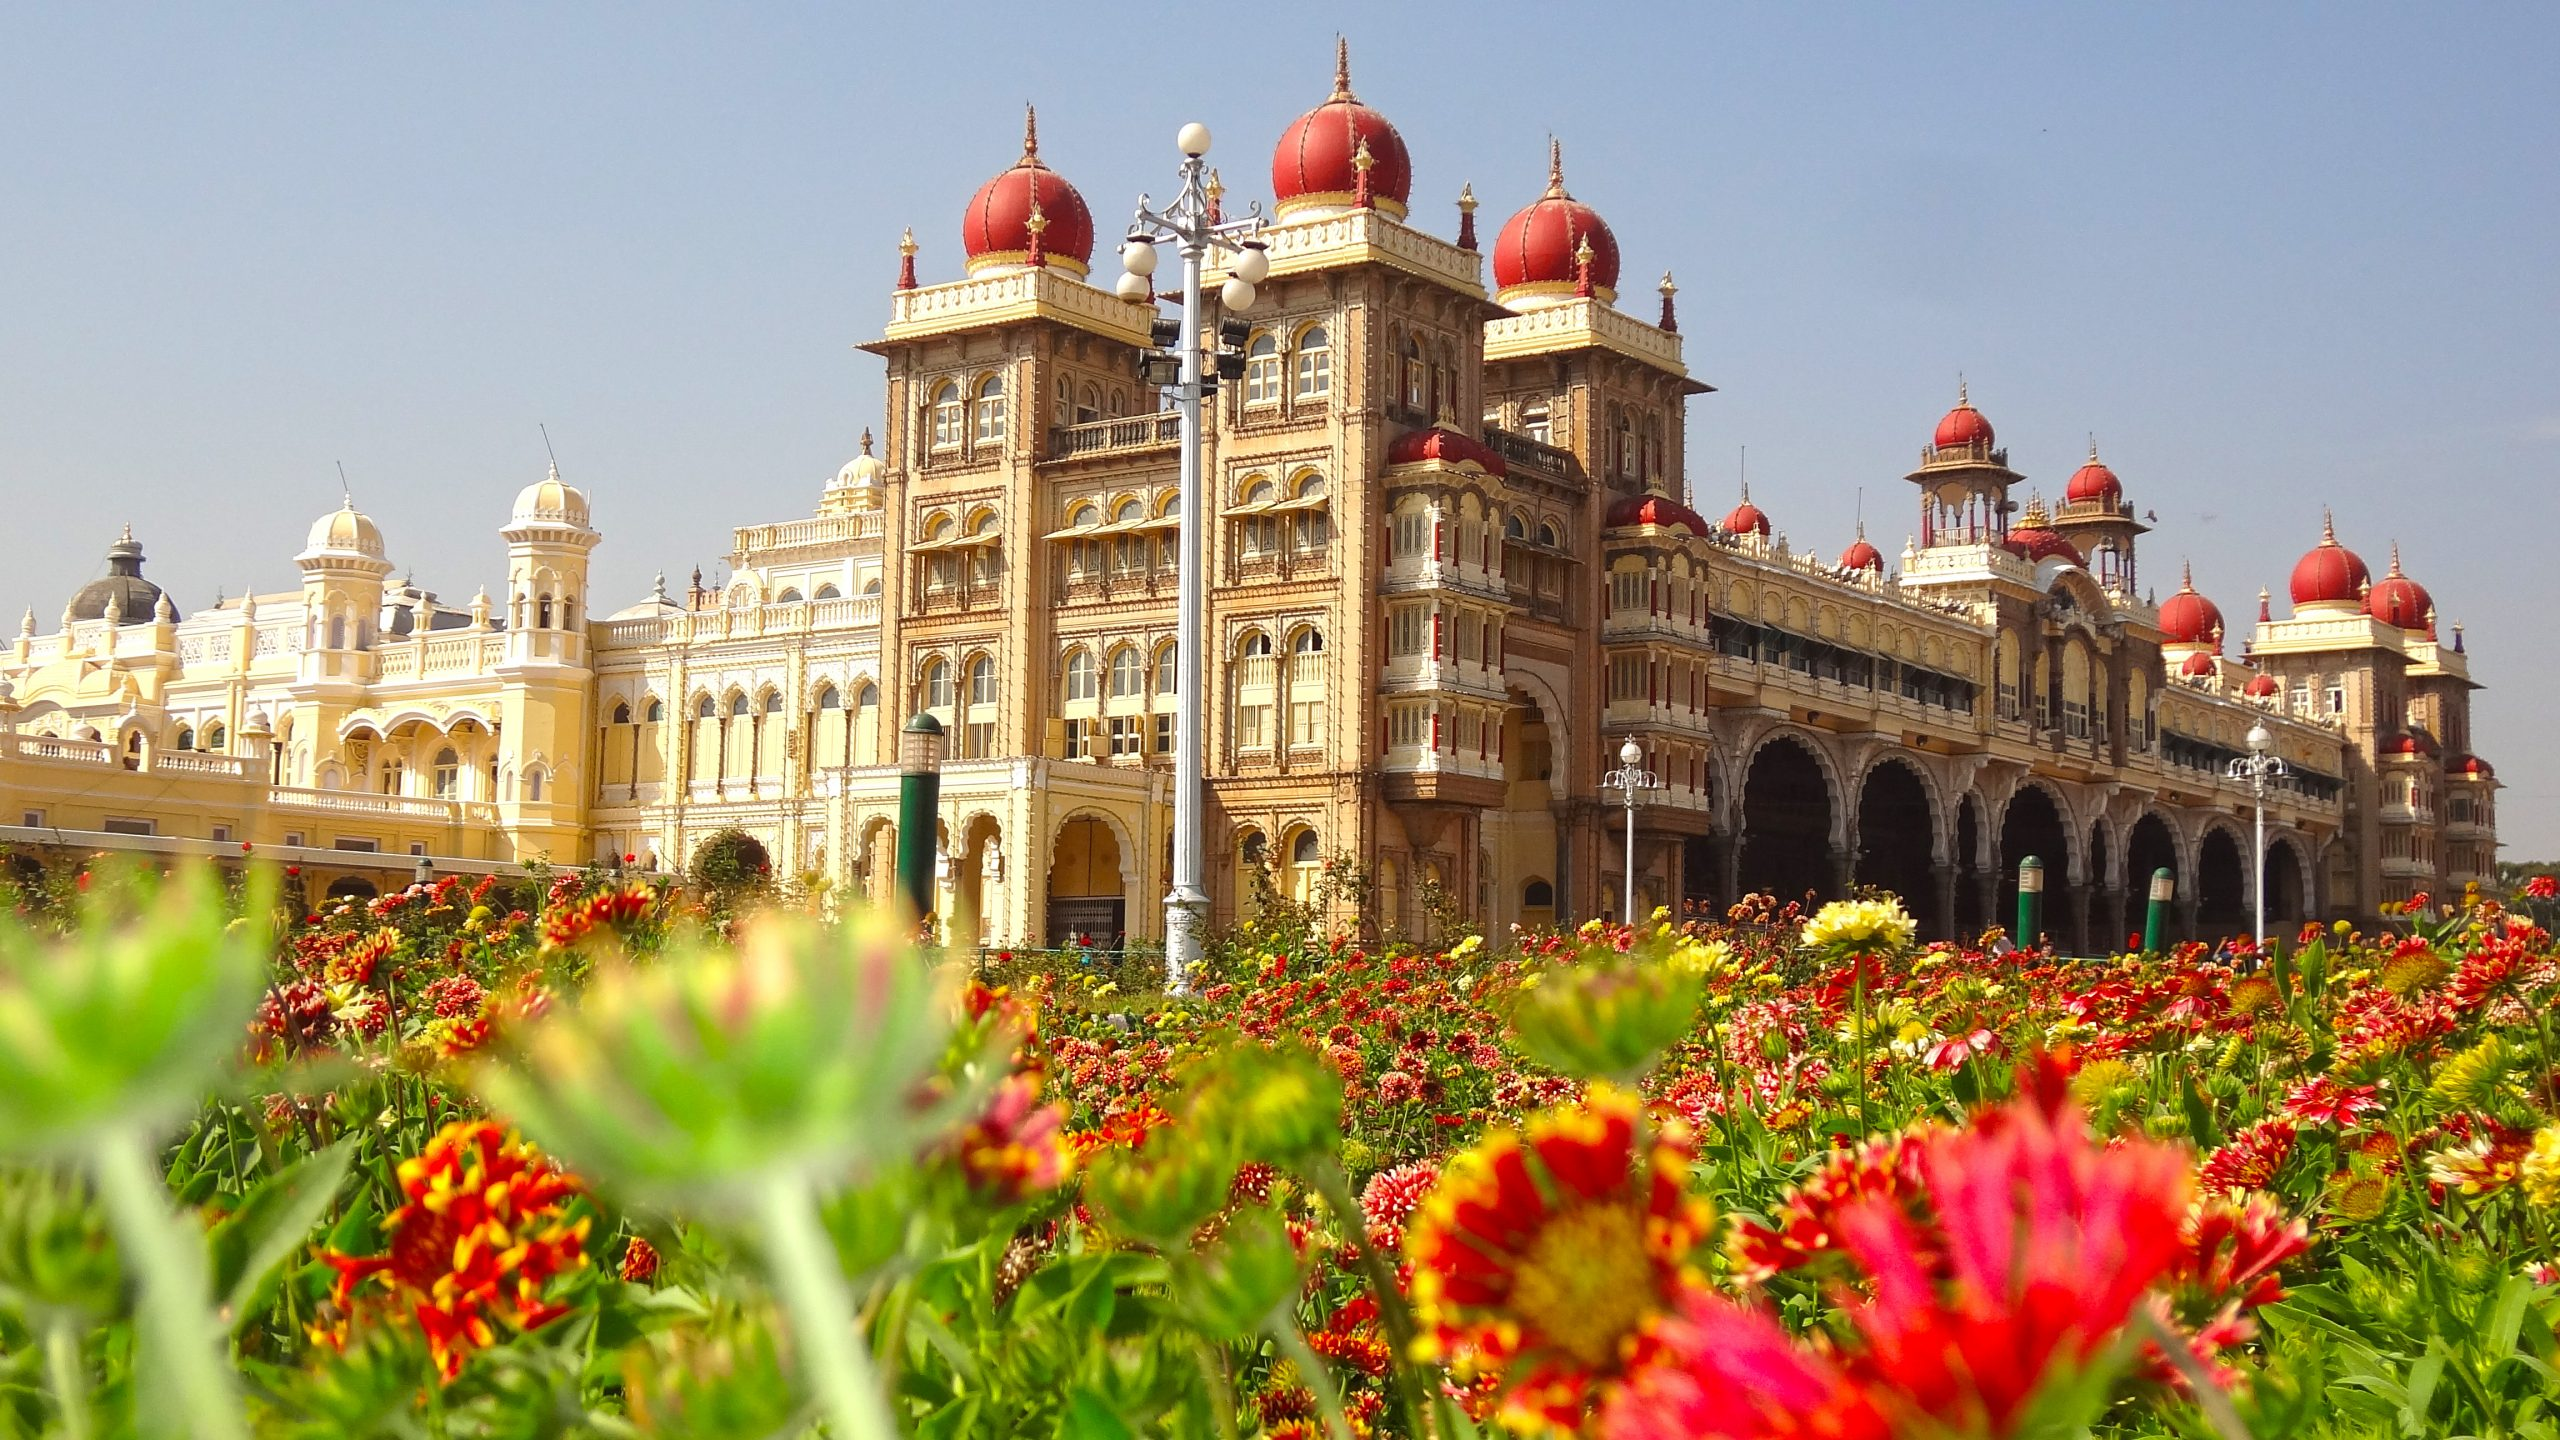 Majestic Palace, Ashtanga Yoga, and Royal Heritage - Mysore Stands Tall As A Cultural City